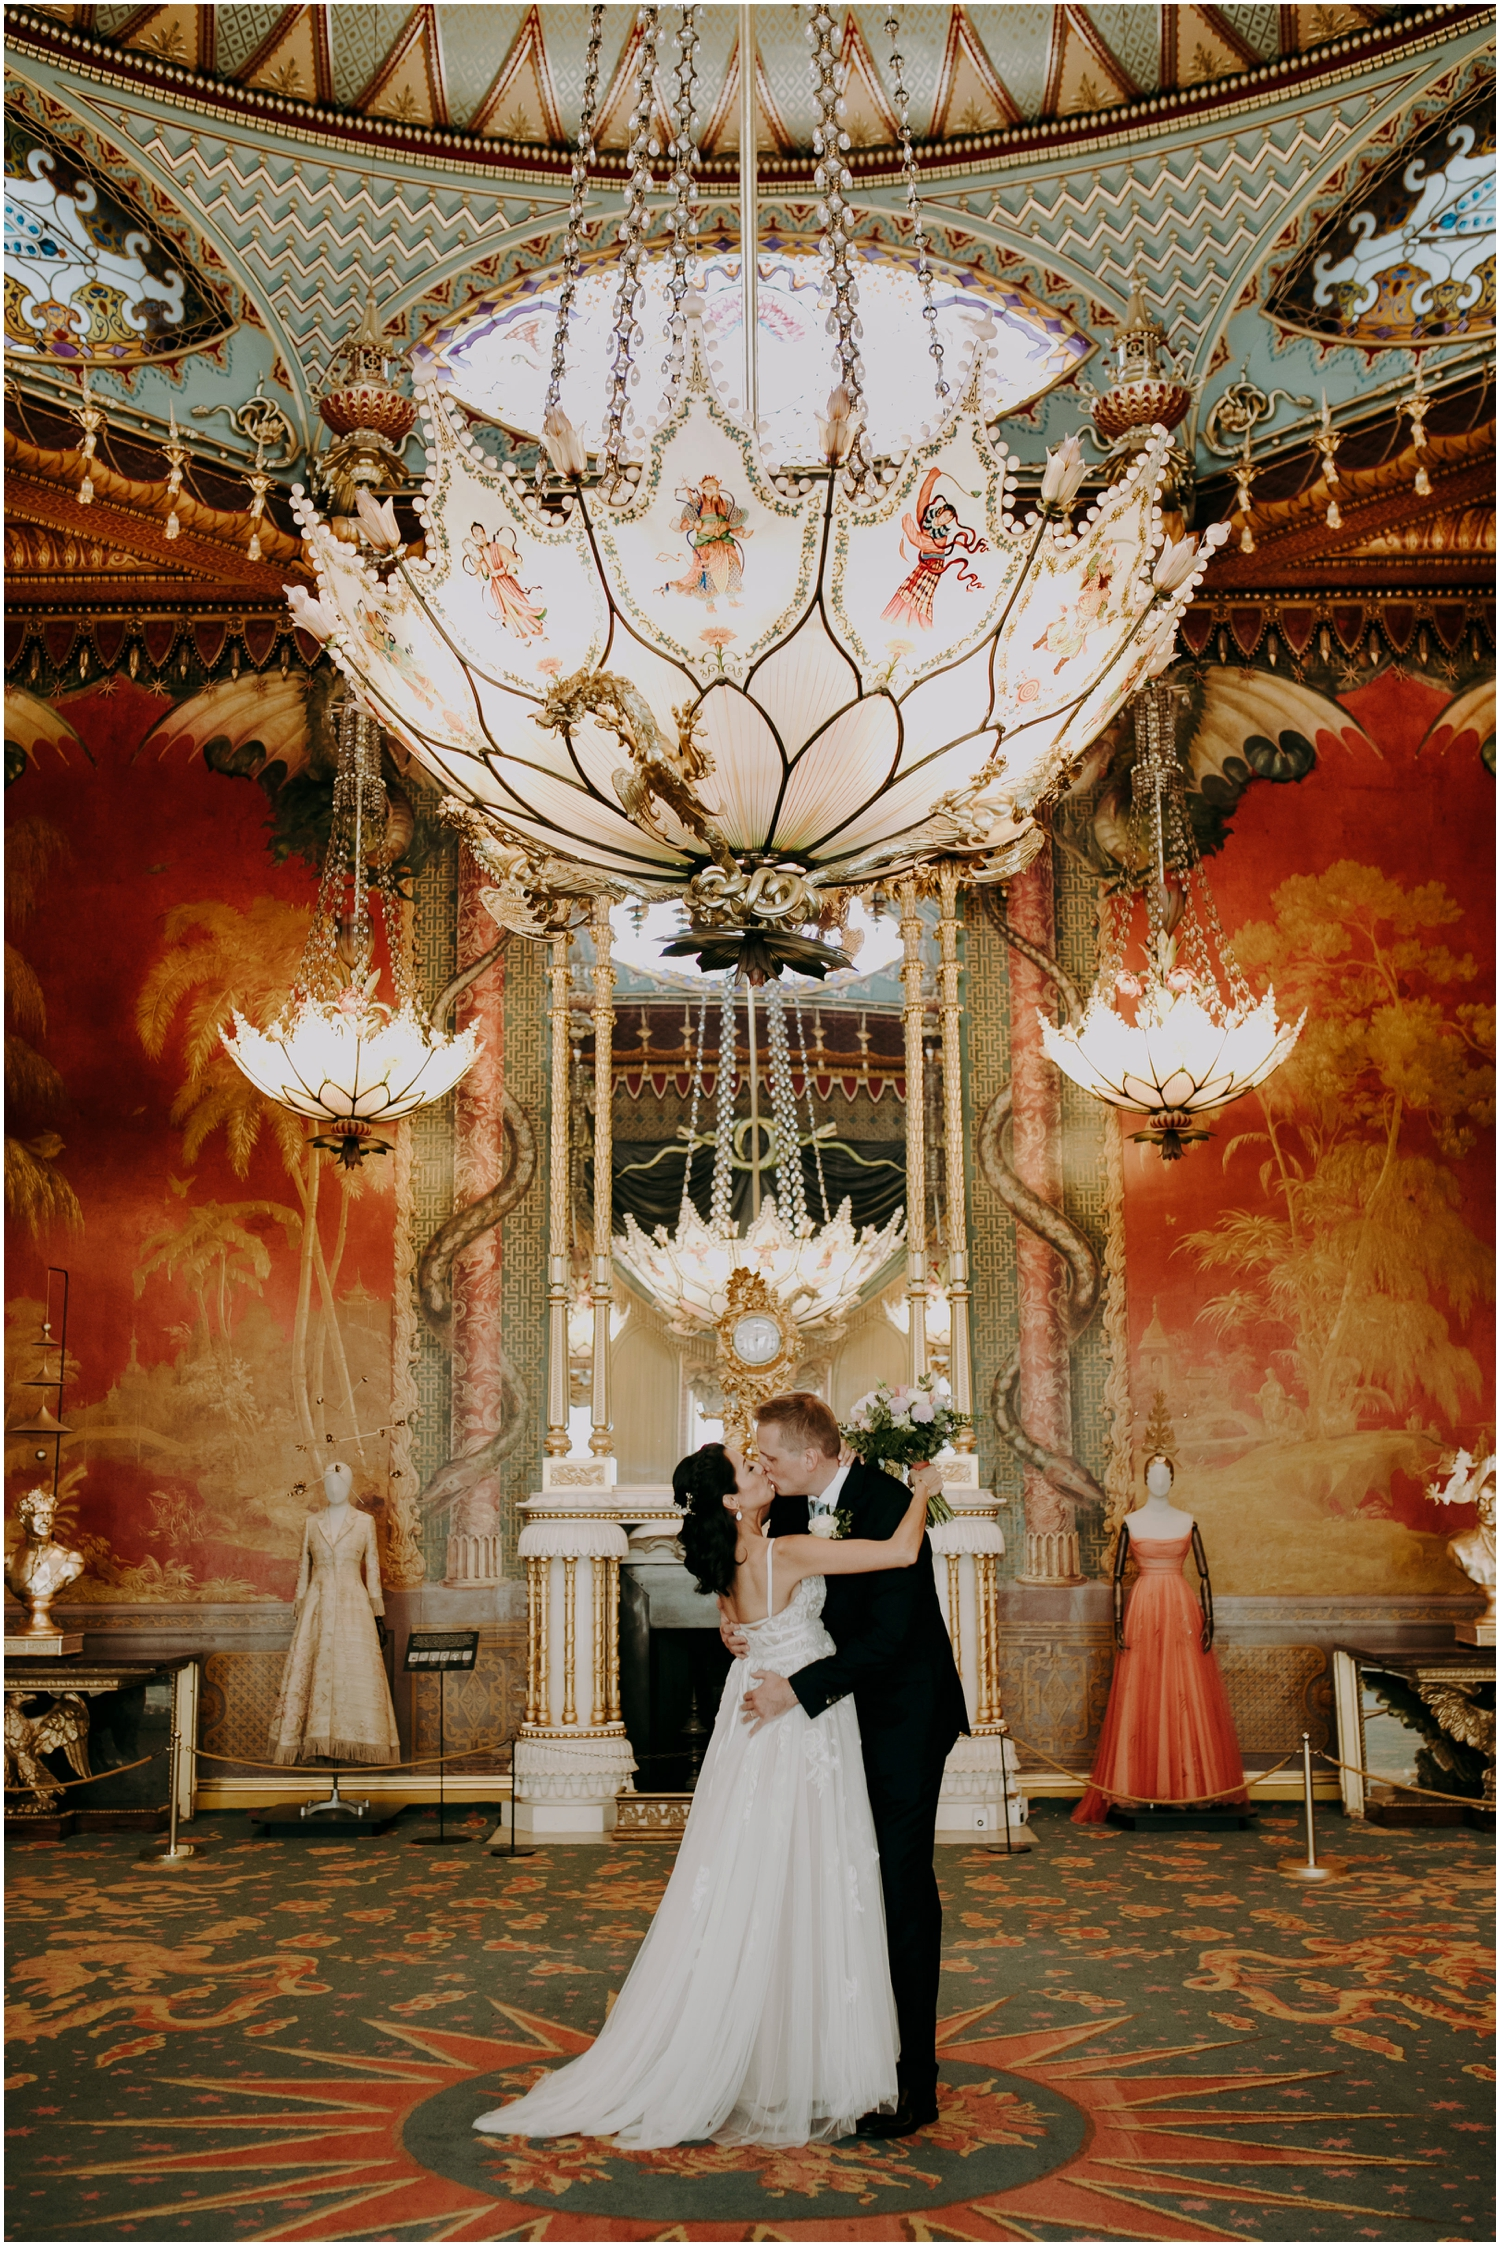 royal pavilion brighton wedding54.jpg